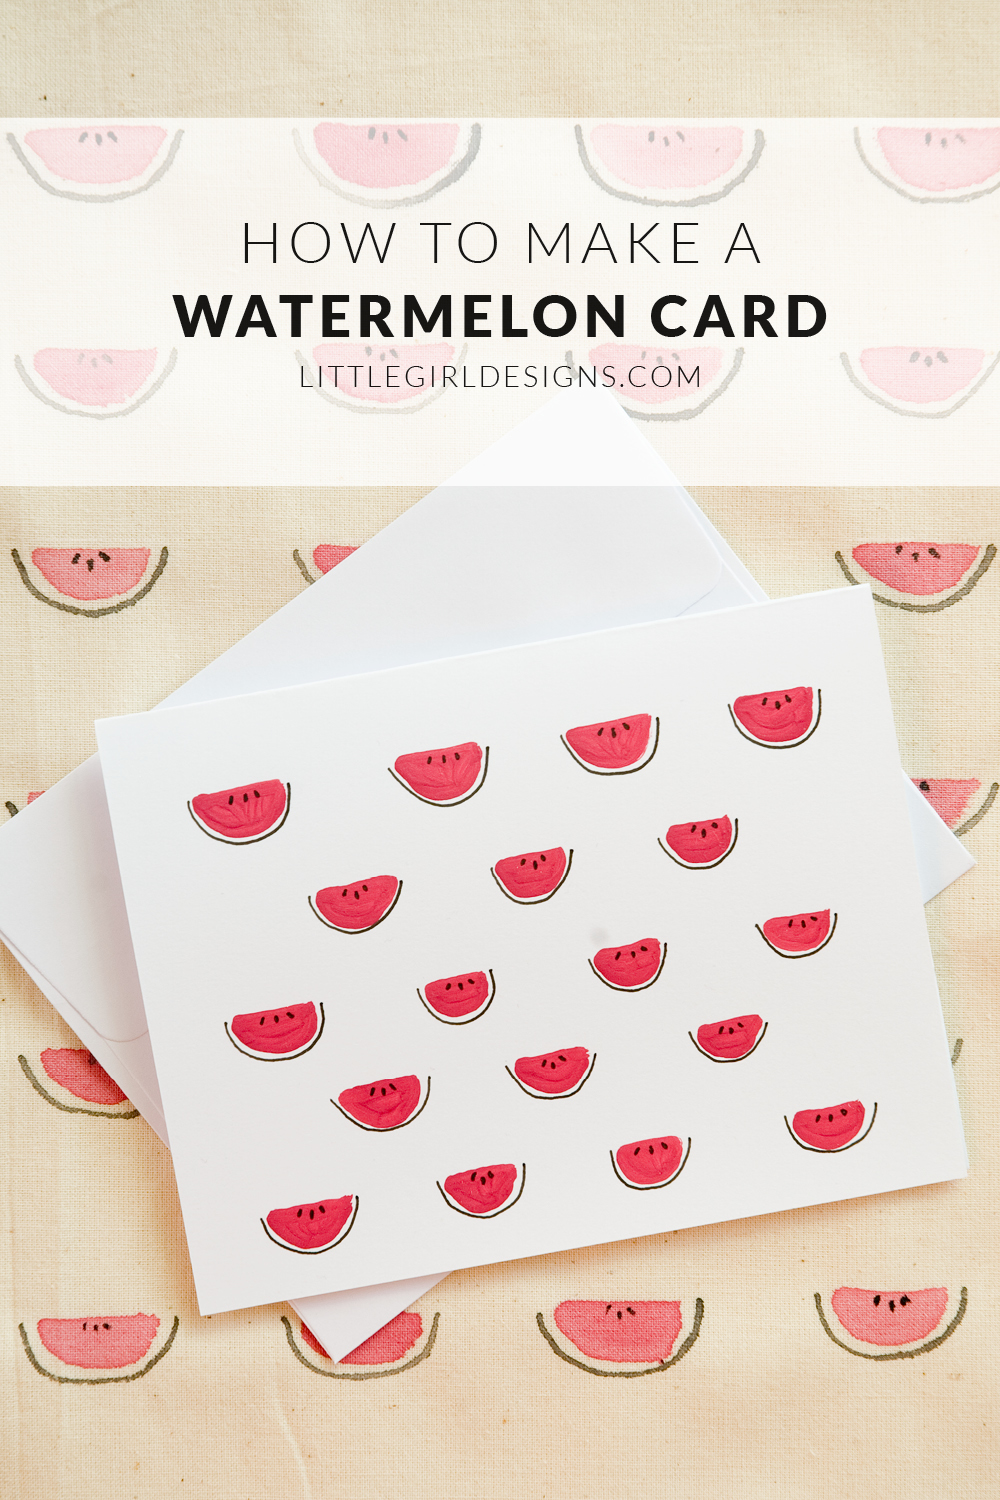 Make a Watermelon Card - Yum! Watermelons are delicious AND cute. Make this card and send some love in the mail. Also a great craft for kids! @ littlegirldesigns.com